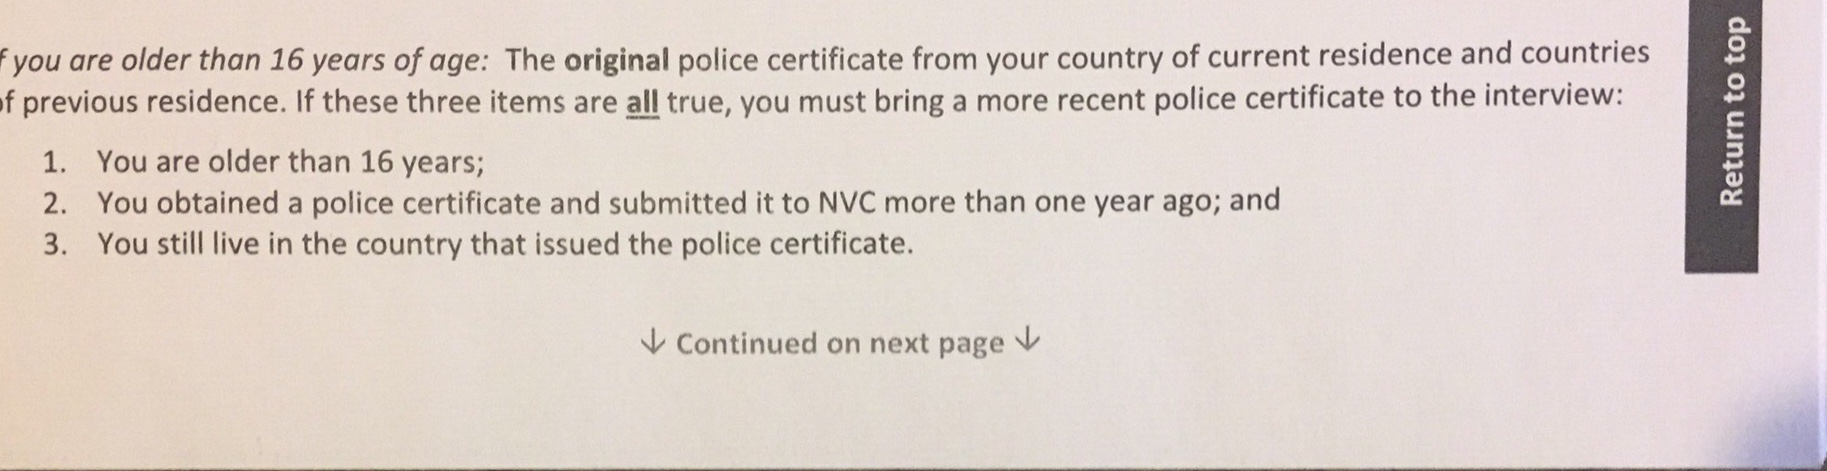 Police Clearance is valid for? - Visas and migration to